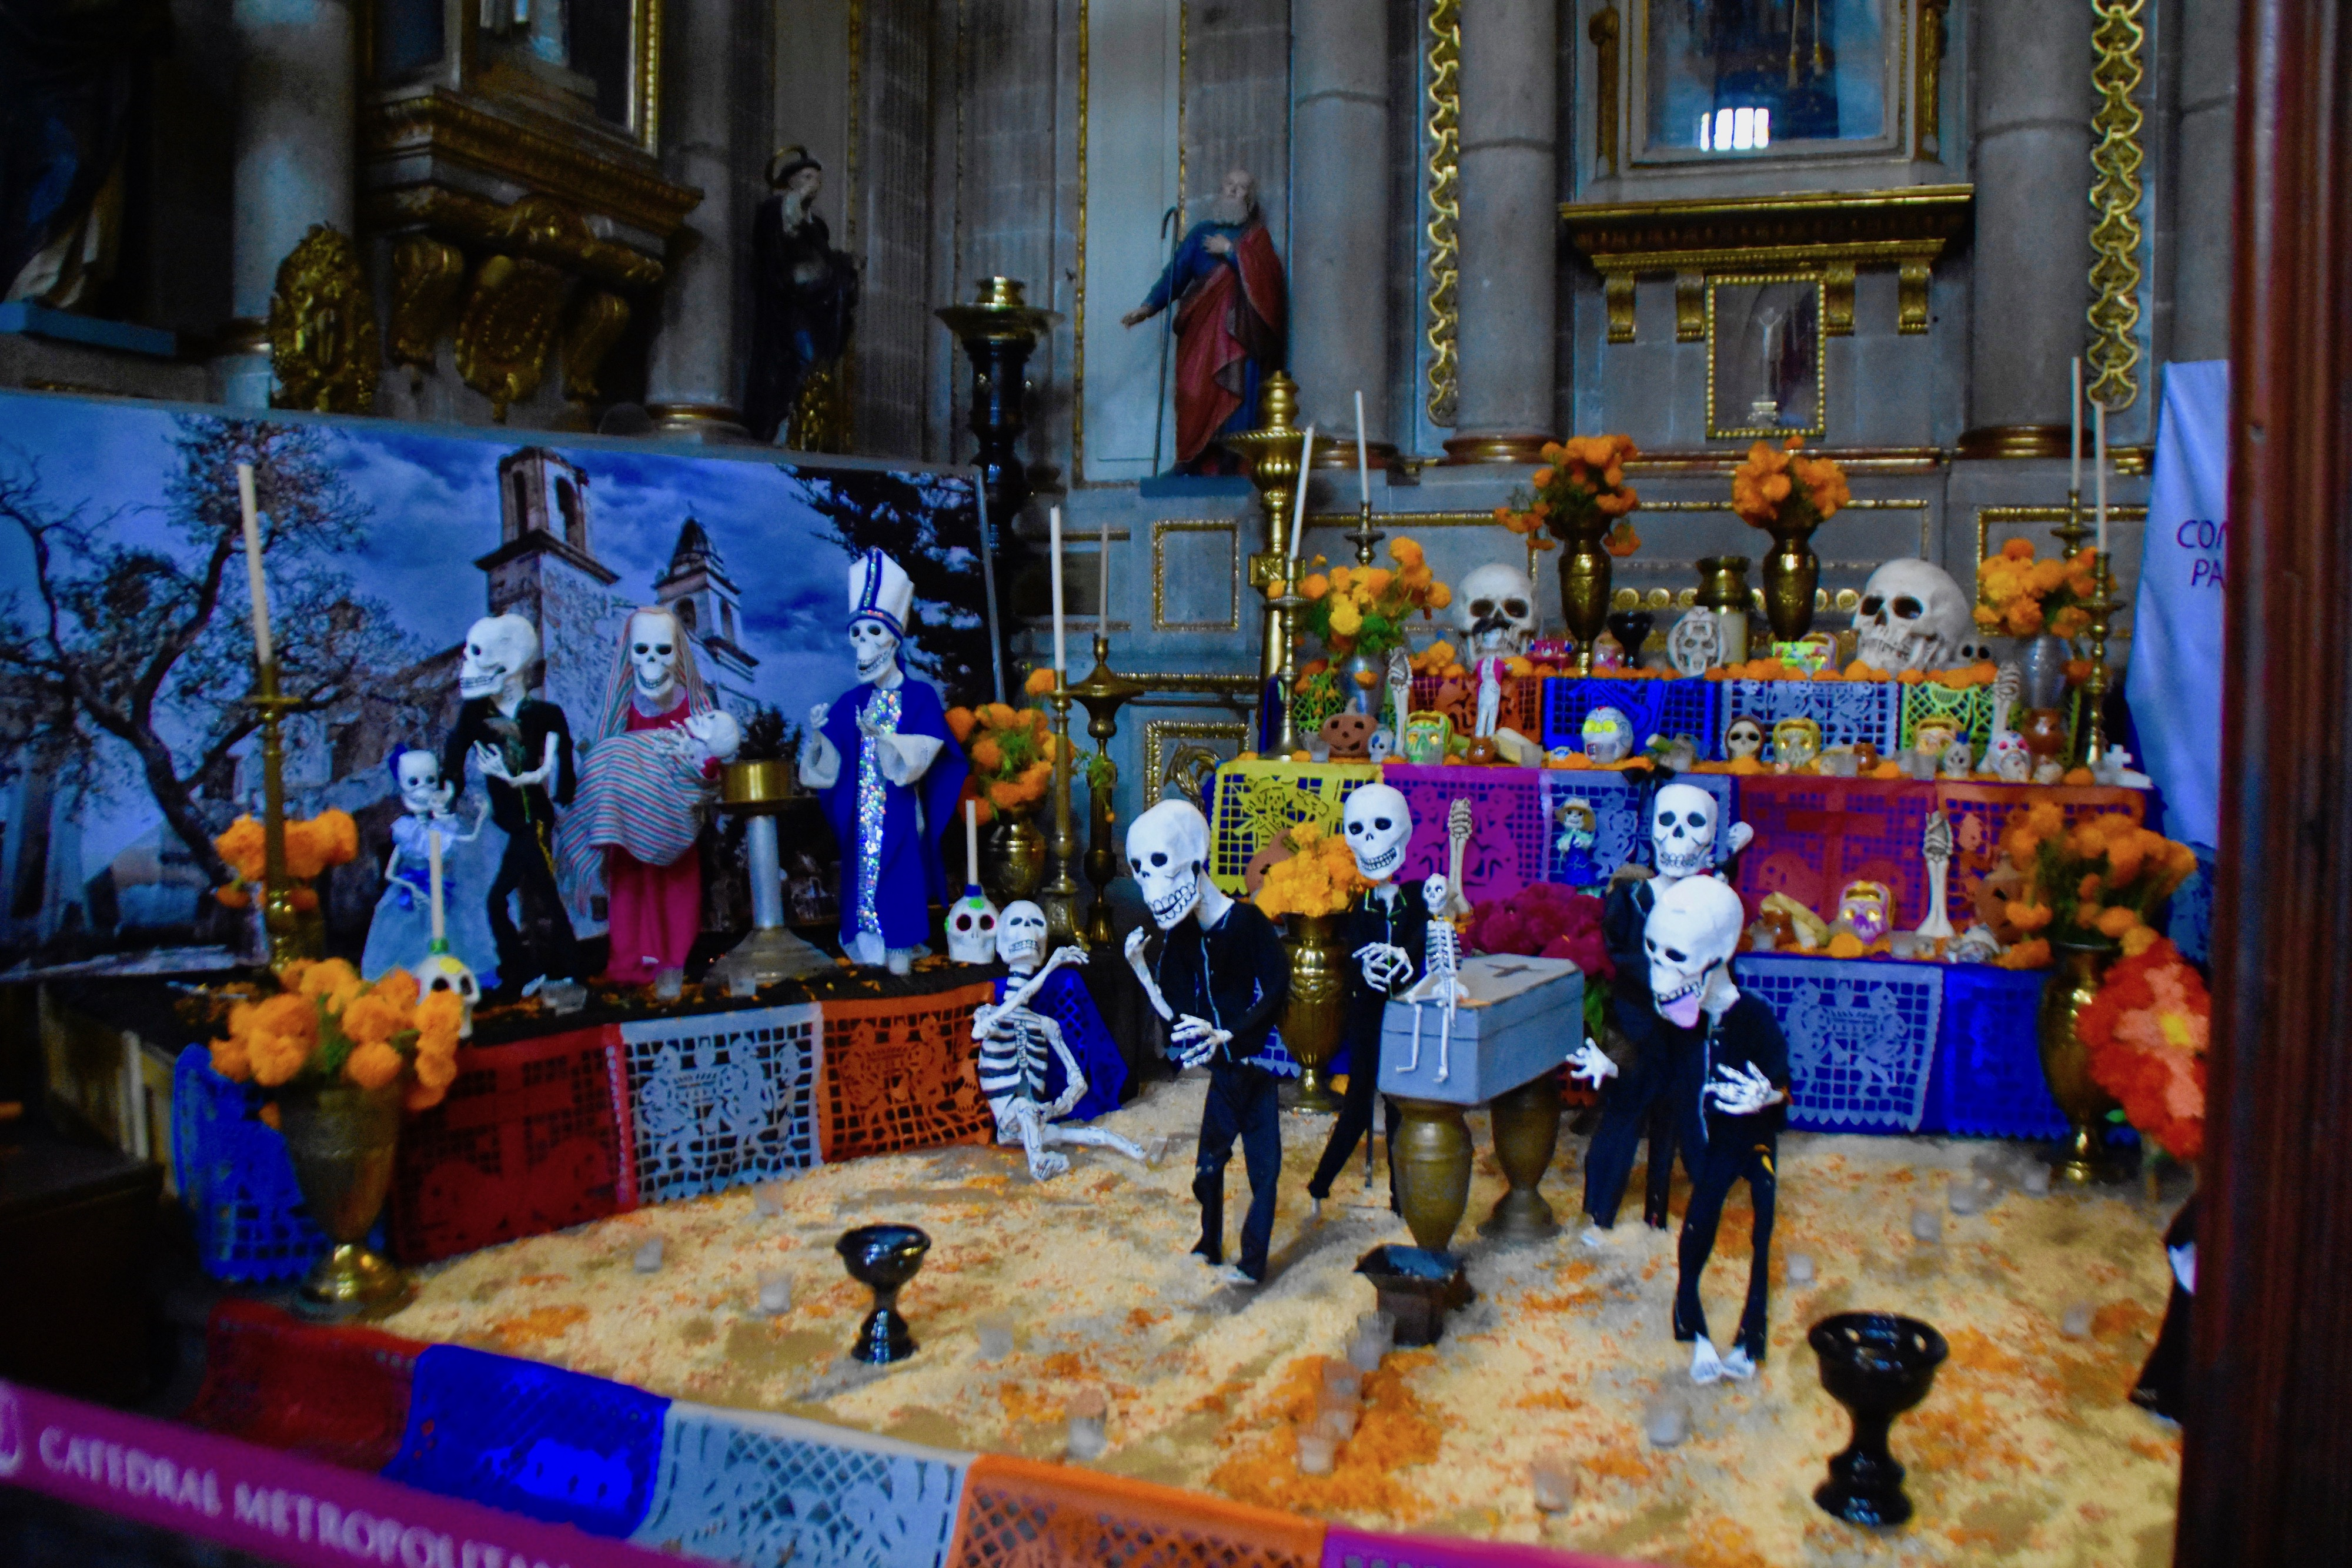 Cathedral Muertes Altar, Mexico City